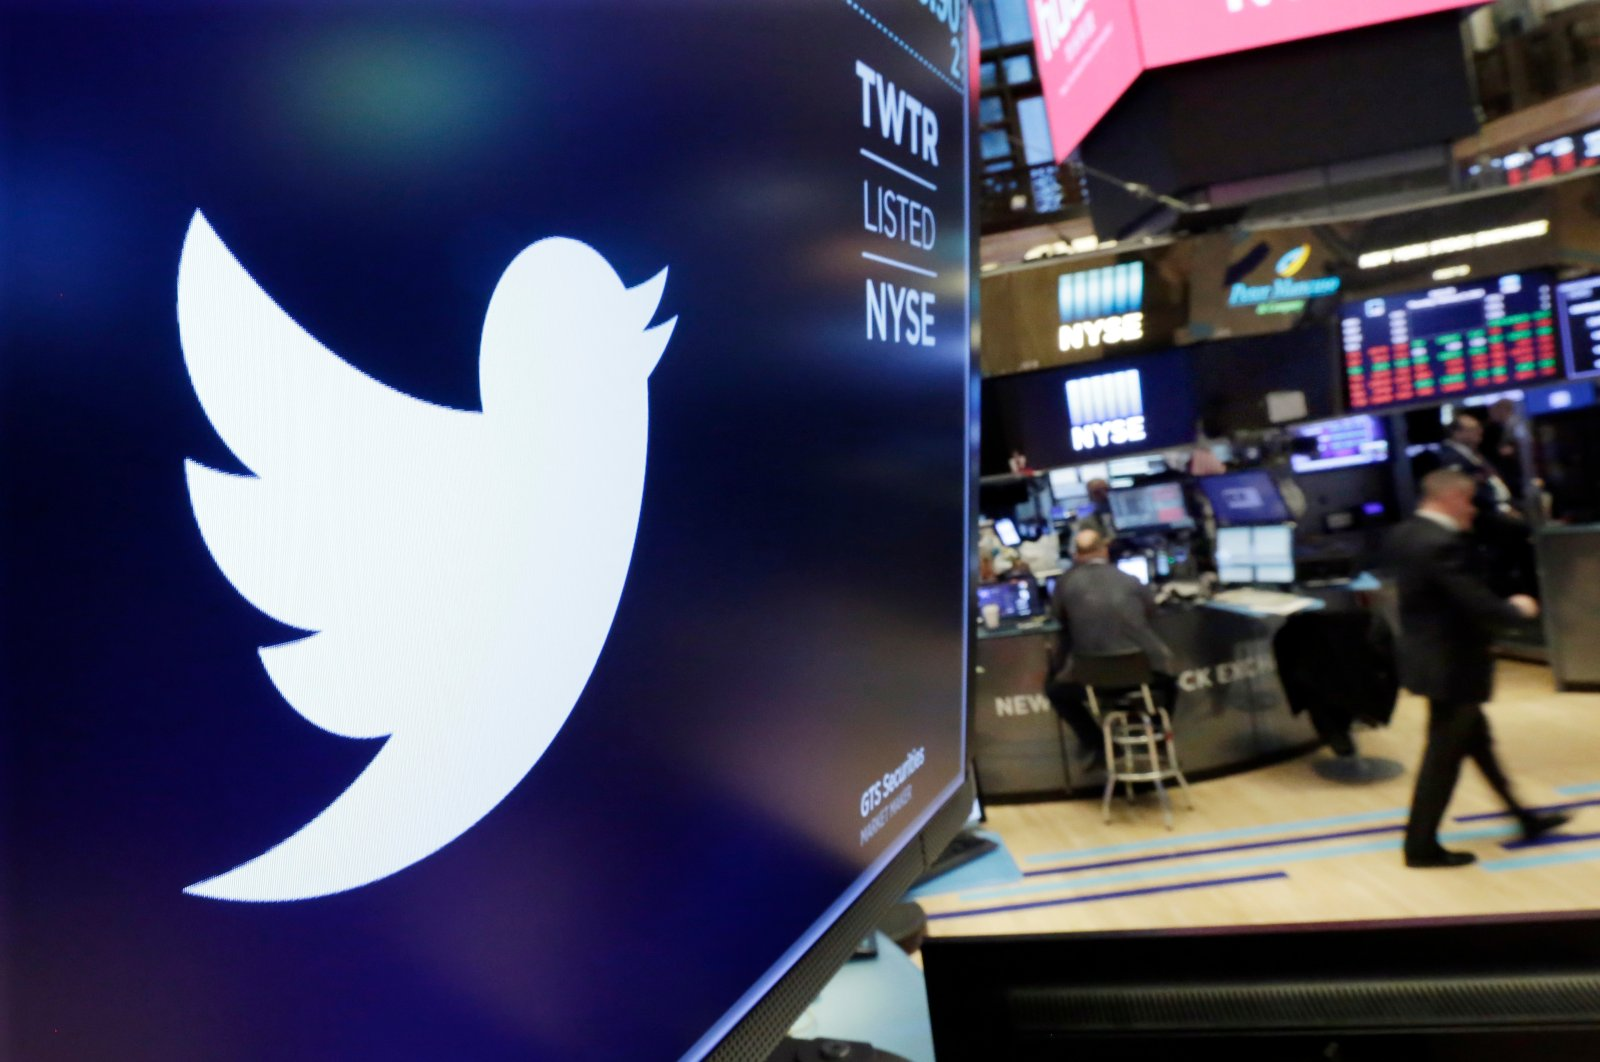 The logo for Twitter is displayed above a trading post on the floor of the New York Stock Exchange, Feb. 8, 2018. (AP Photo)